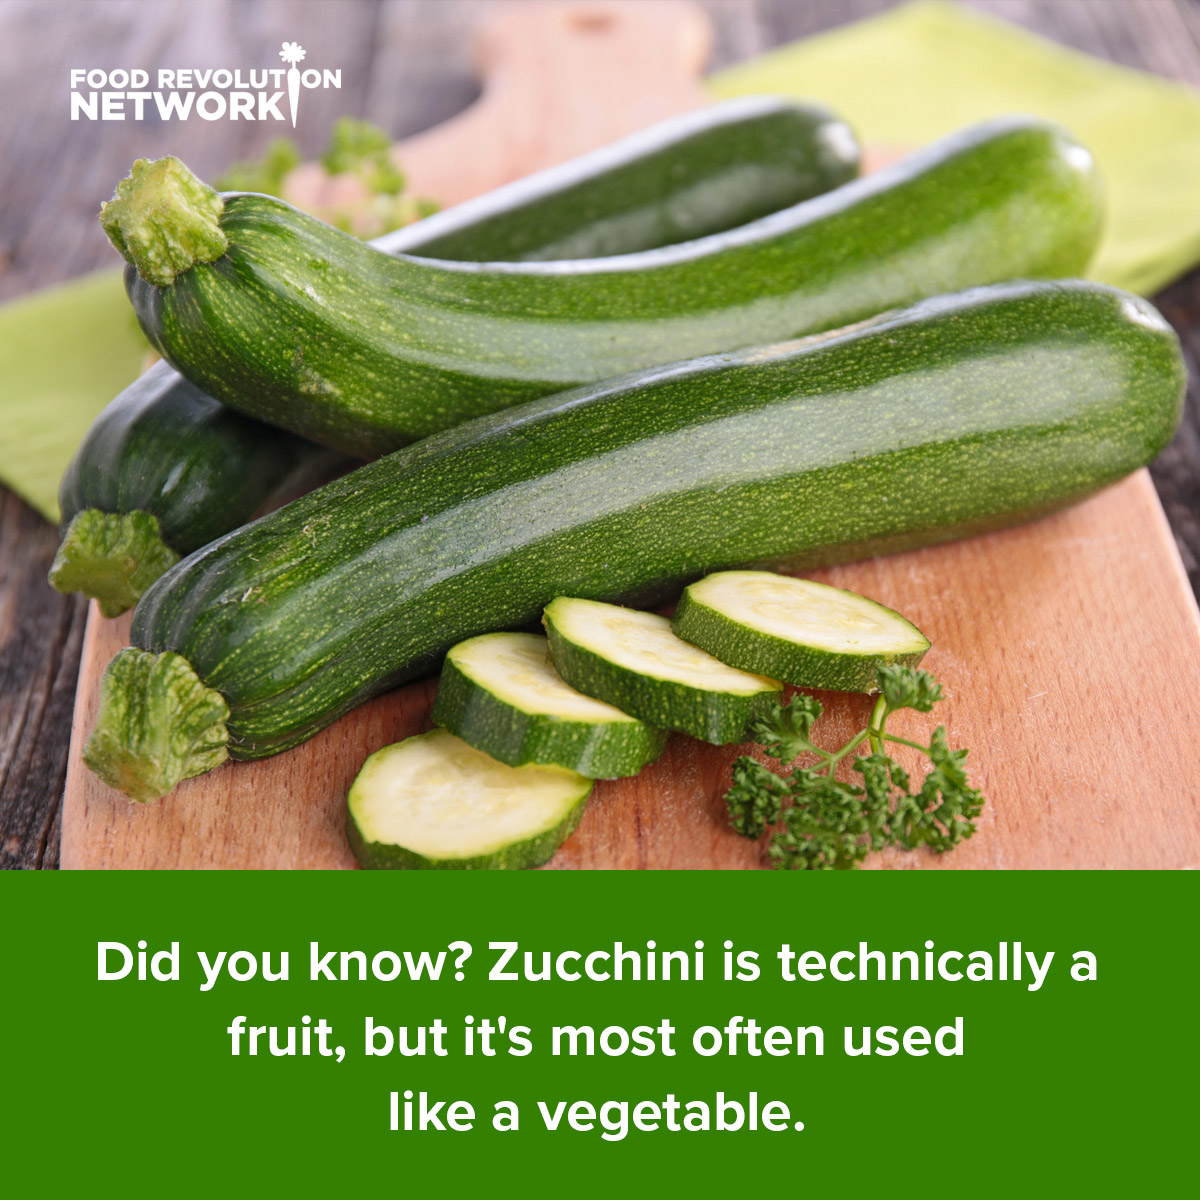 Did you know? Zucchini is technically a fruit, but it's most often used like a vegetable.